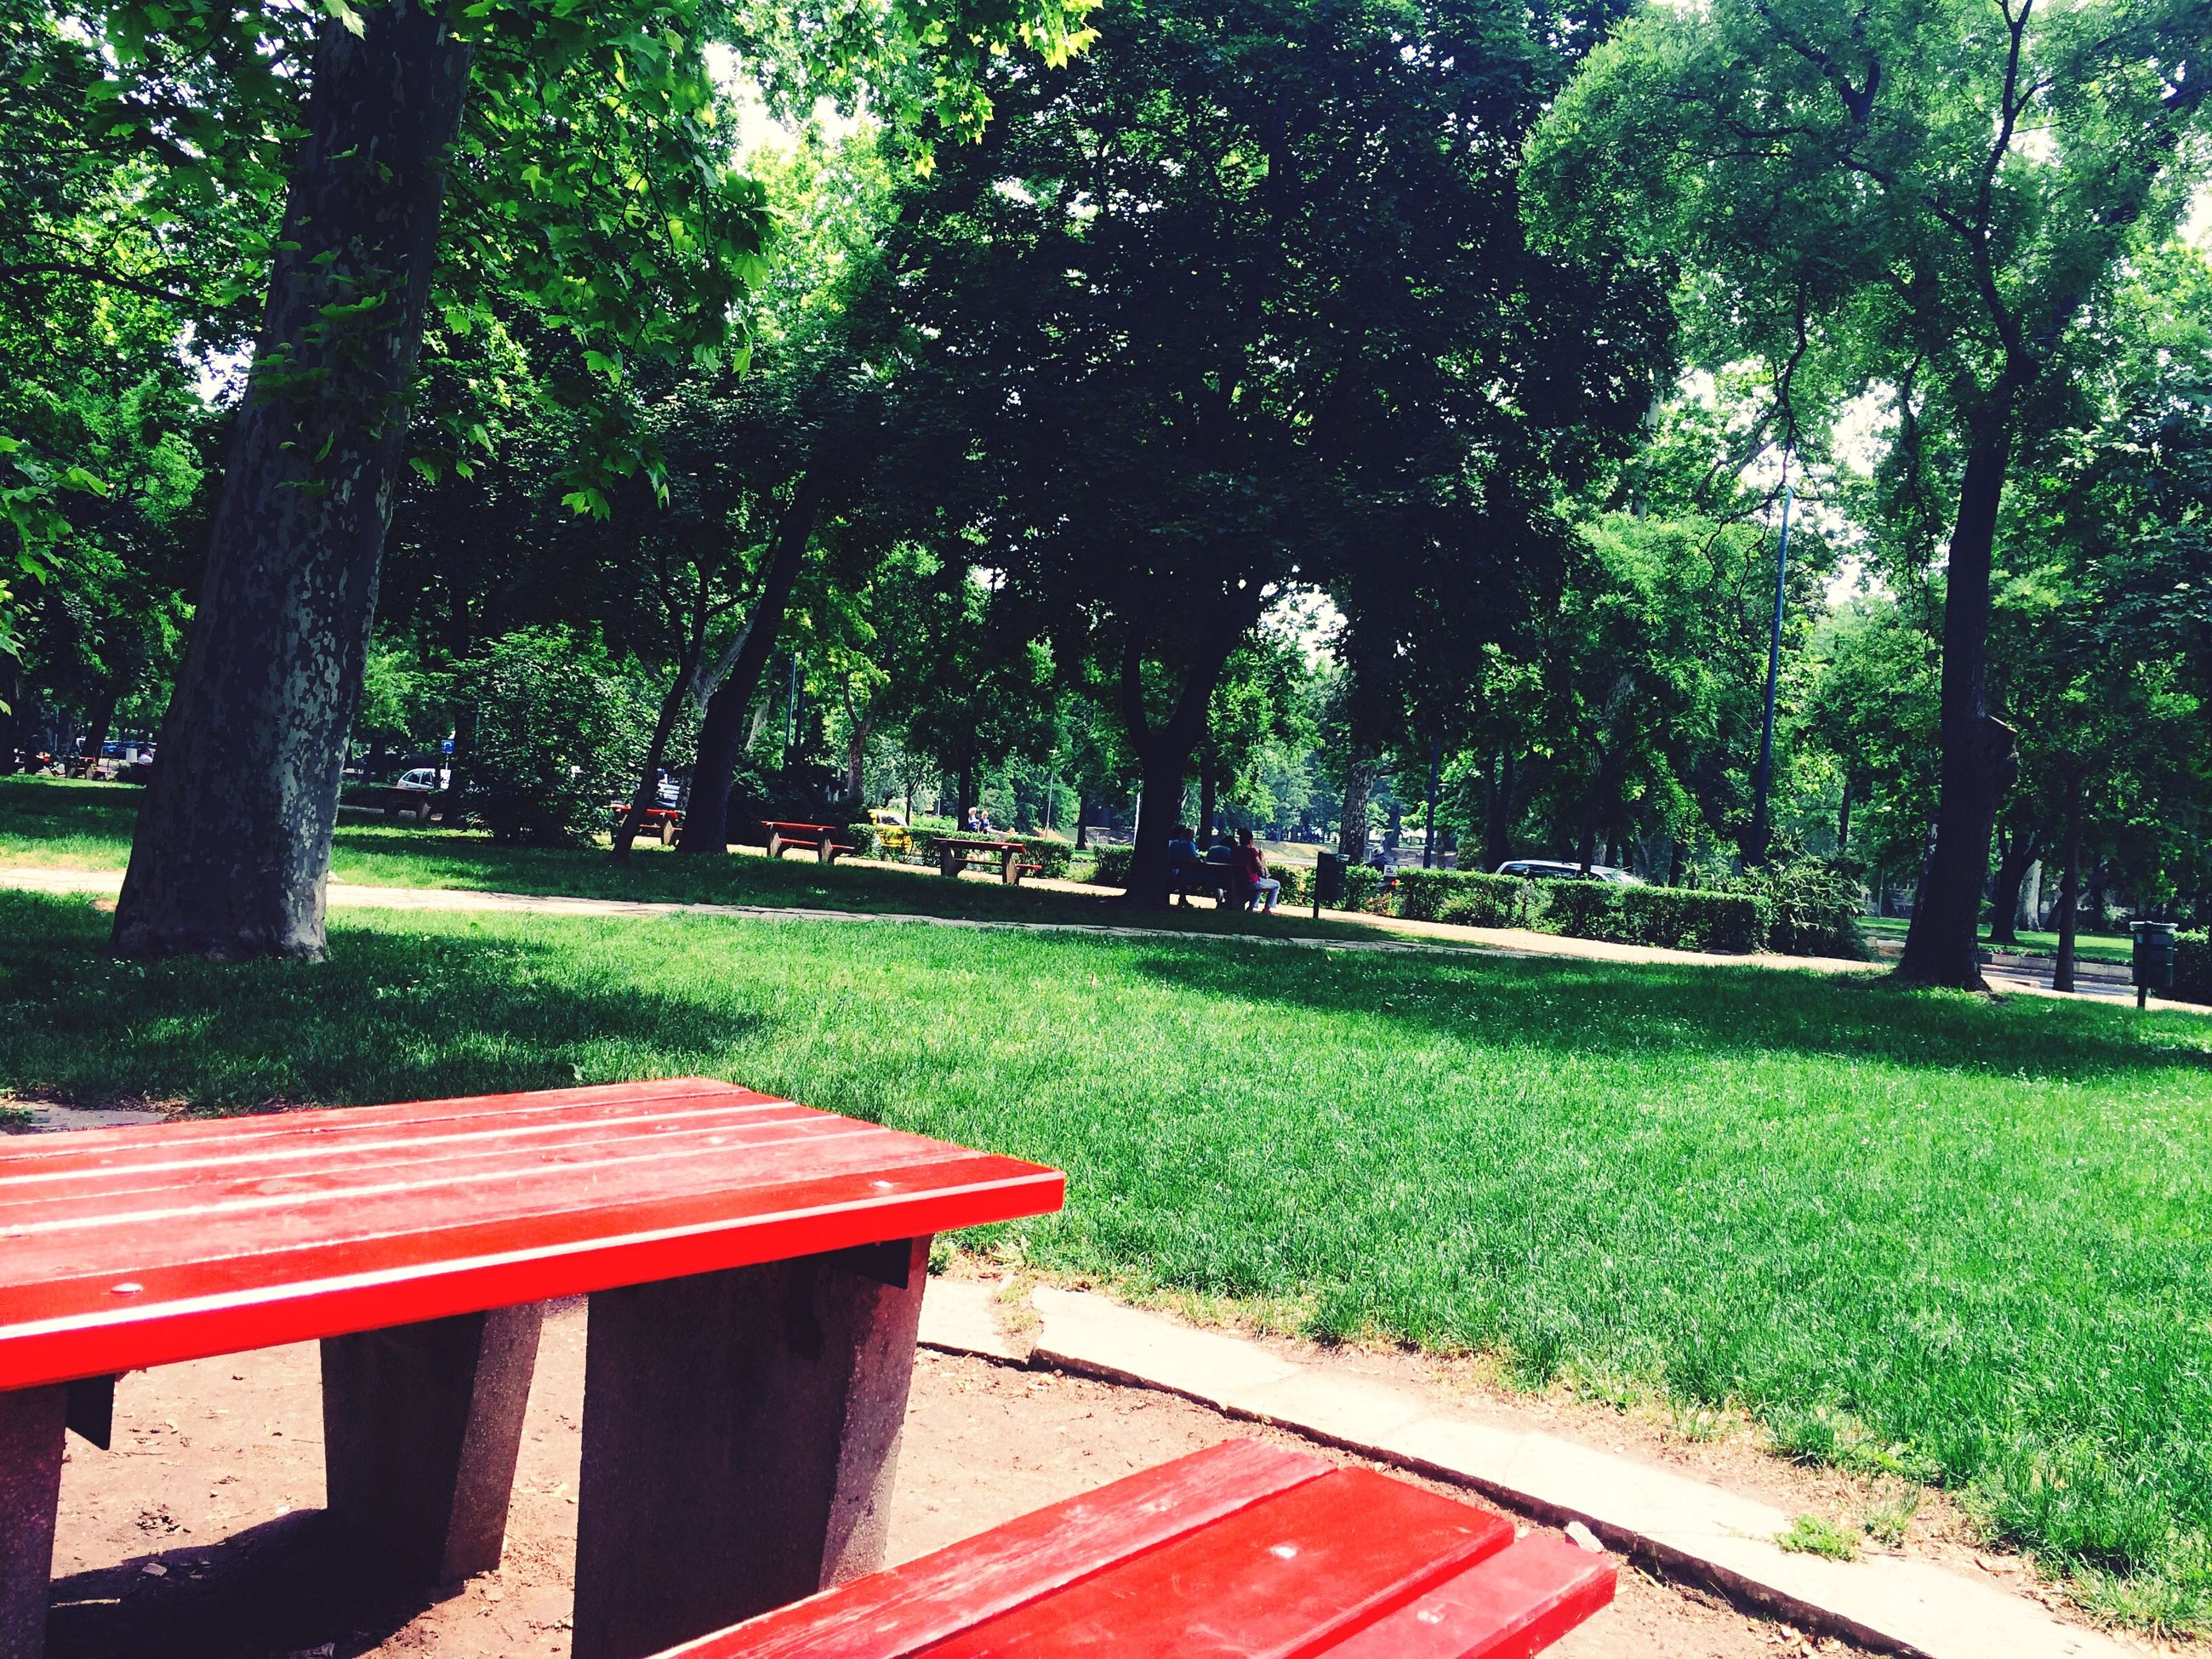 tree, grass, park - man made space, green color, growth, bench, park, lawn, tranquility, nature, red, sunlight, empty, beauty in nature, tranquil scene, day, park bench, absence, garden, shadow